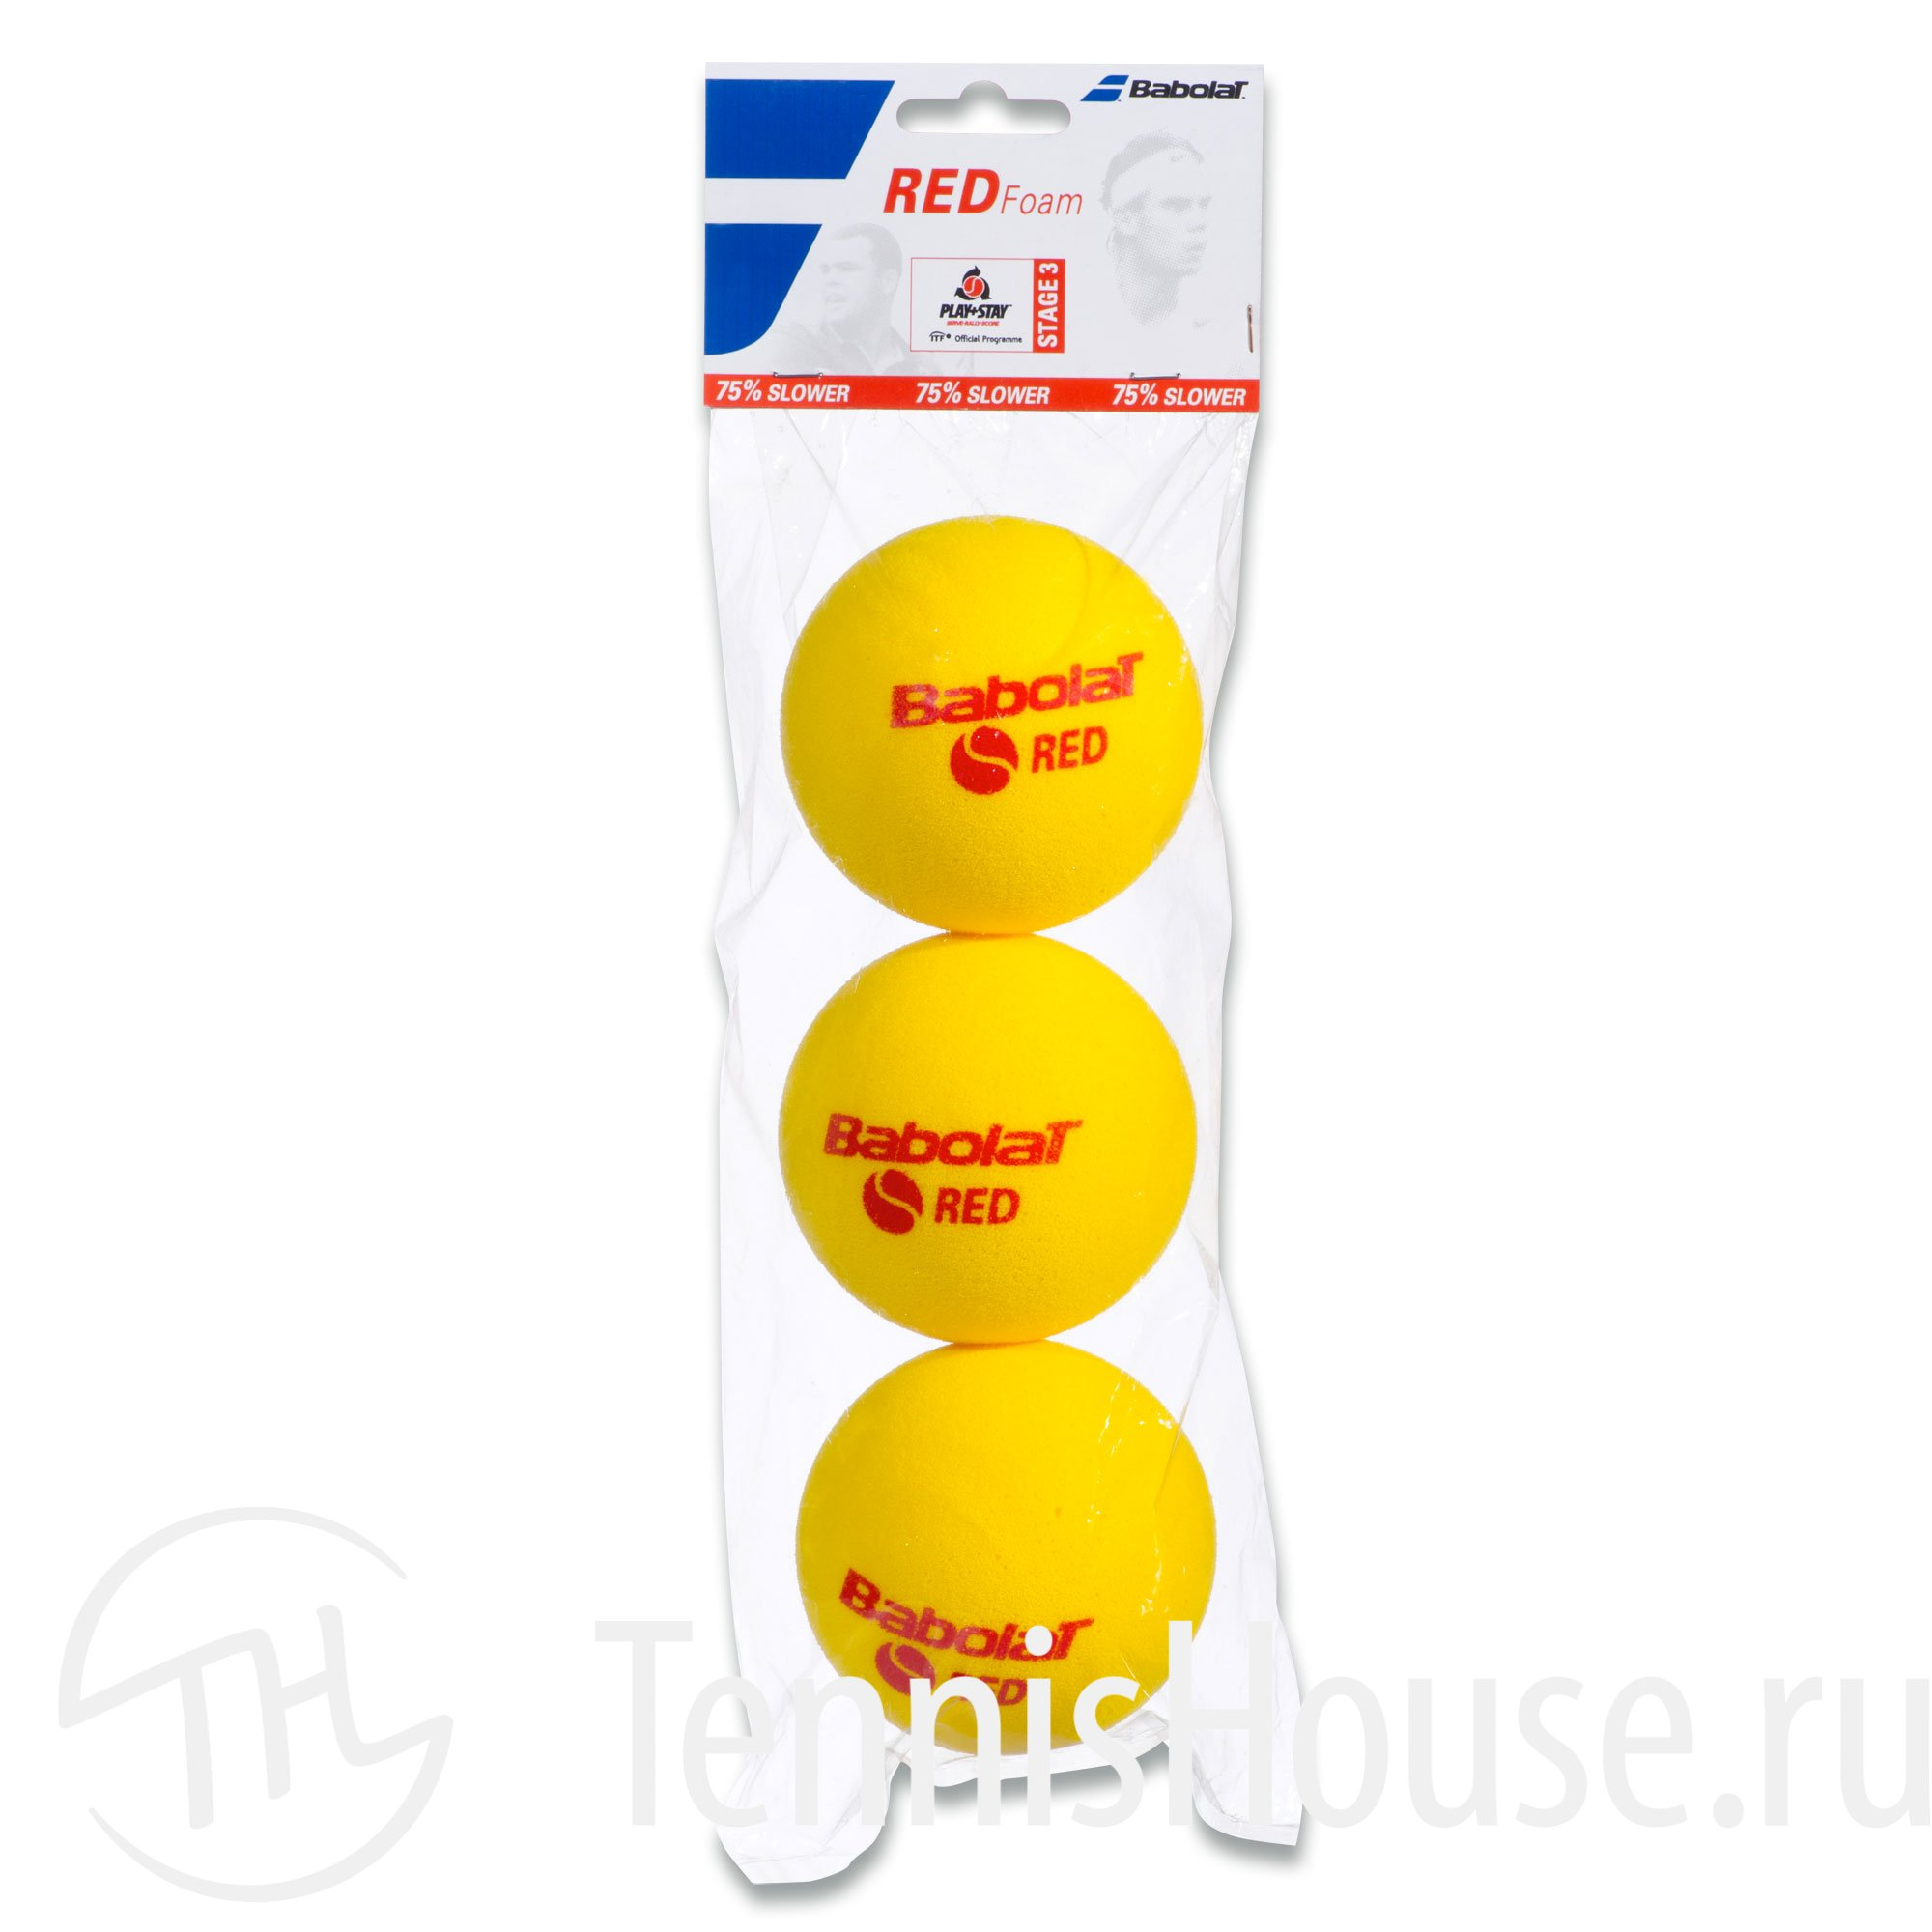 Babolat Red Foam 3шт 501037